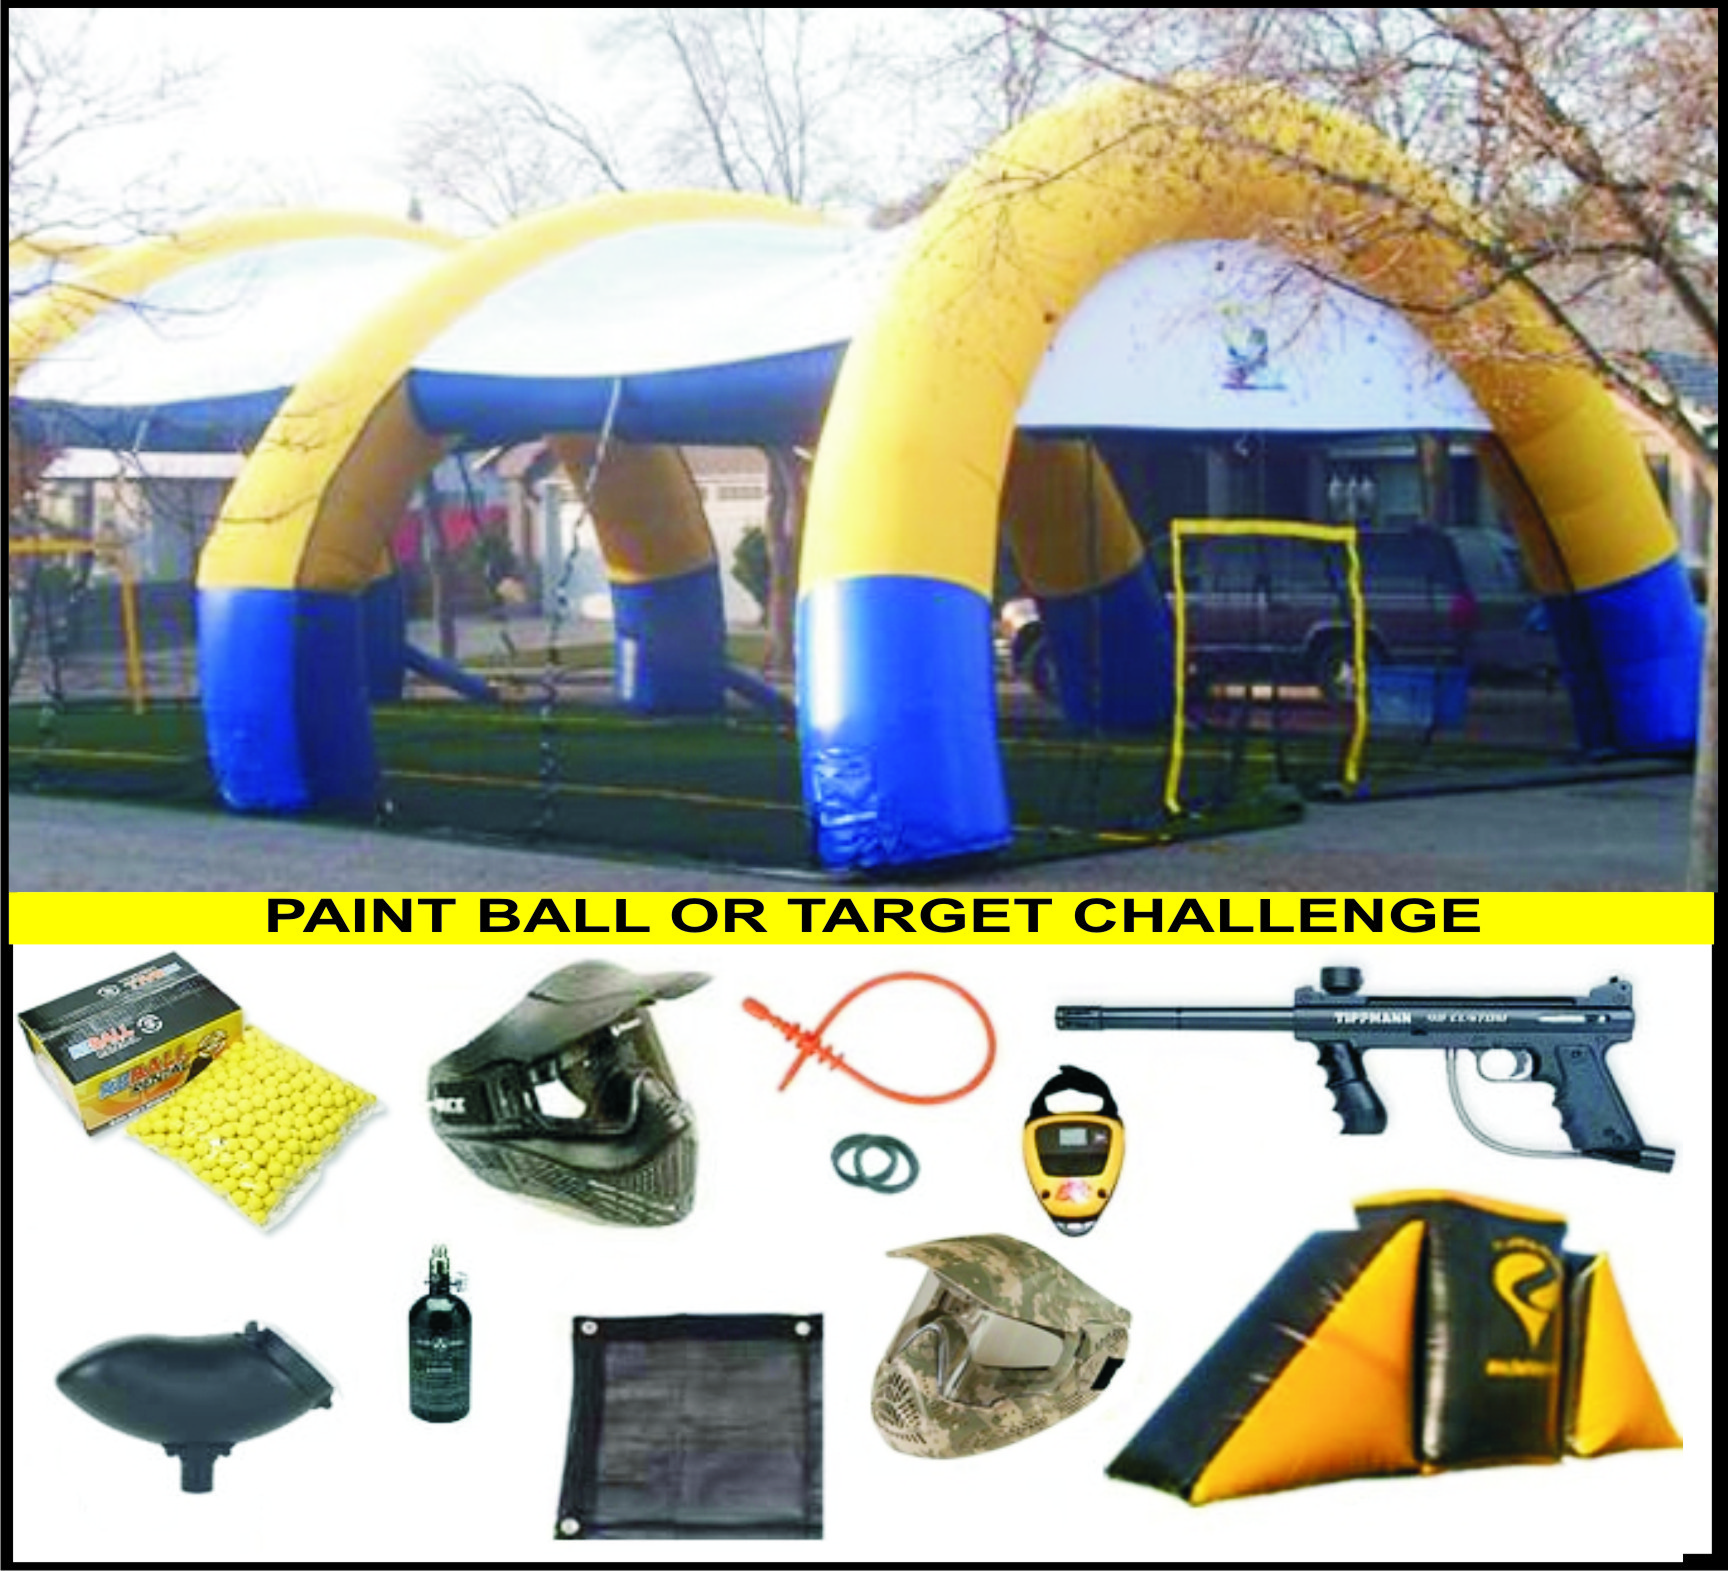 Paint Ball / Target Challenge